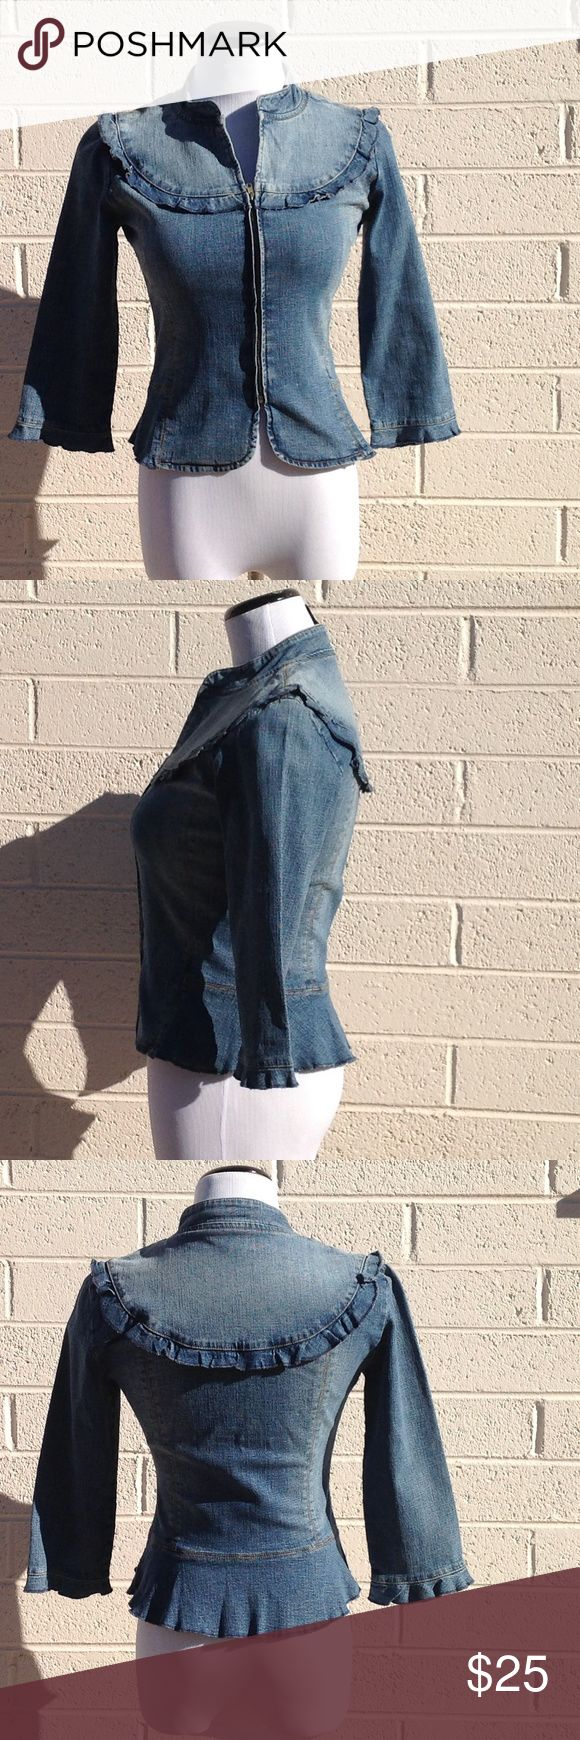 BCBG MaxAzria Jean Zip Up Jacket size 2 Jean zip up jacket by BCBG MaxAzria Jeans in size two. Adorable ruffle details and flattering cut. 93% cotton. No rips, tears, or stains. Great feminine take on a classic wardrobe piece. Perfect for fall or spring! BCBGMaxAzria Jackets & Coats Jean Jackets